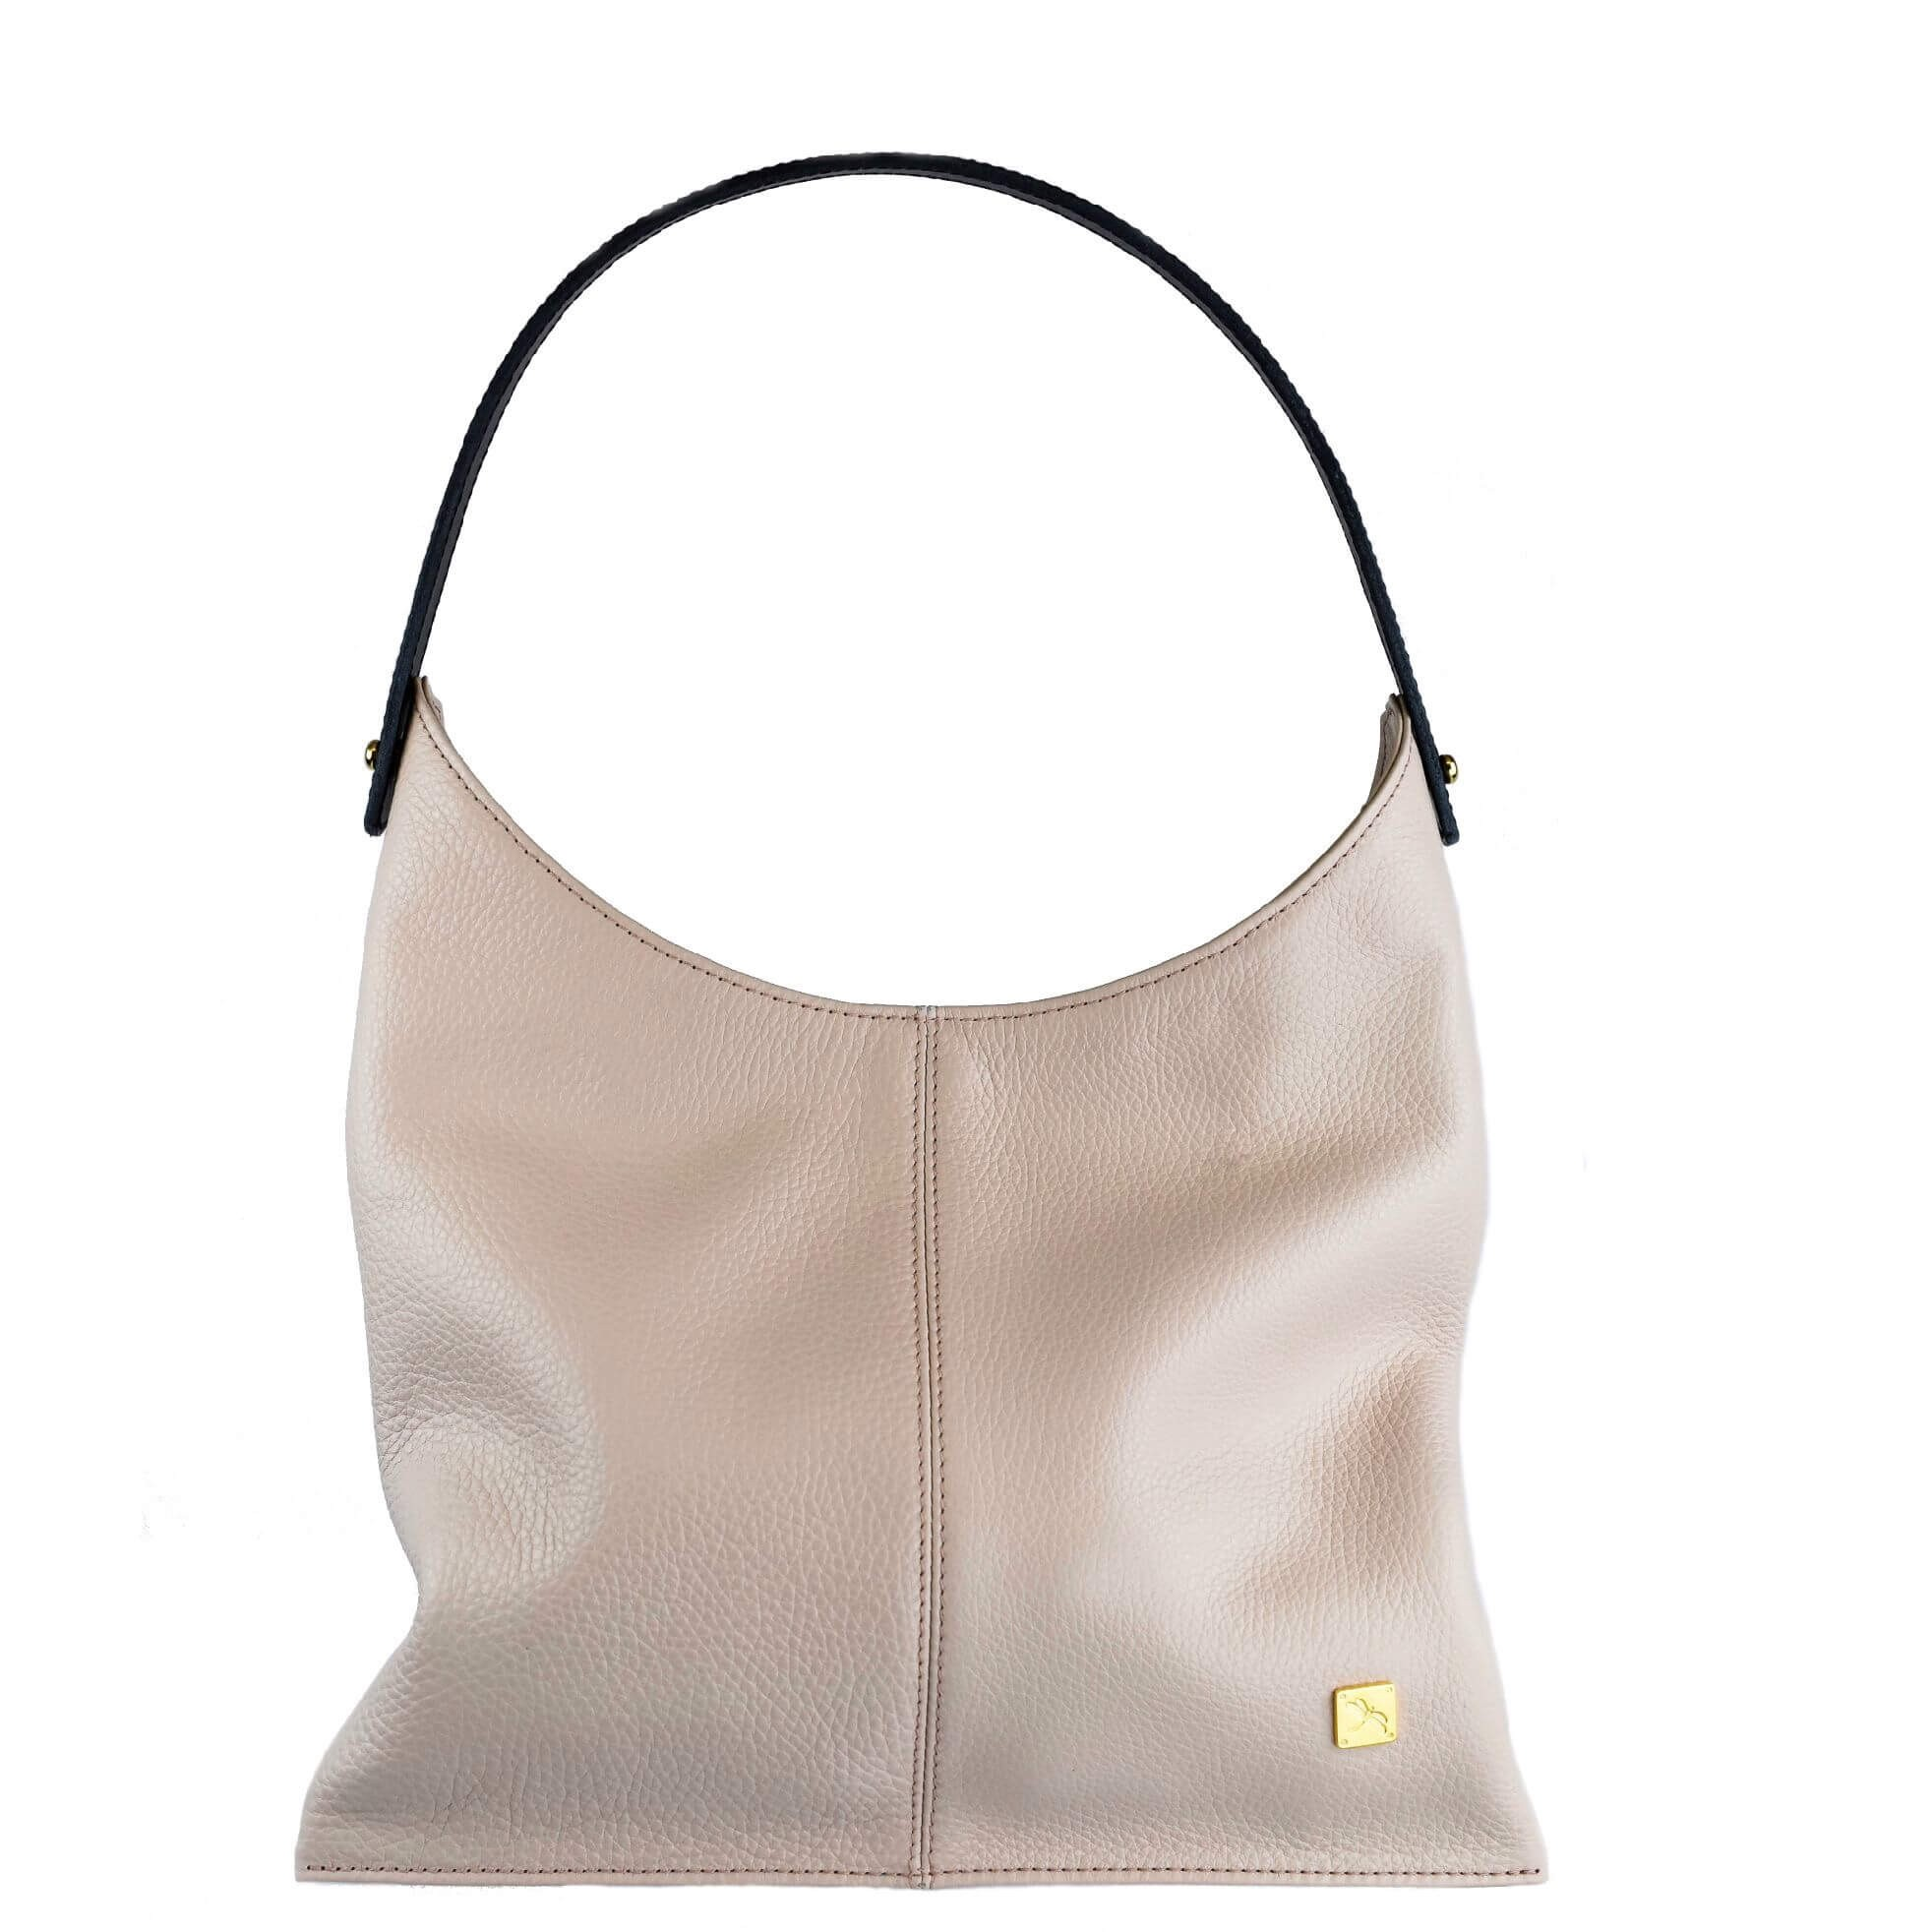 NEW - Soft Pink Leather Hobo Bag. Deia